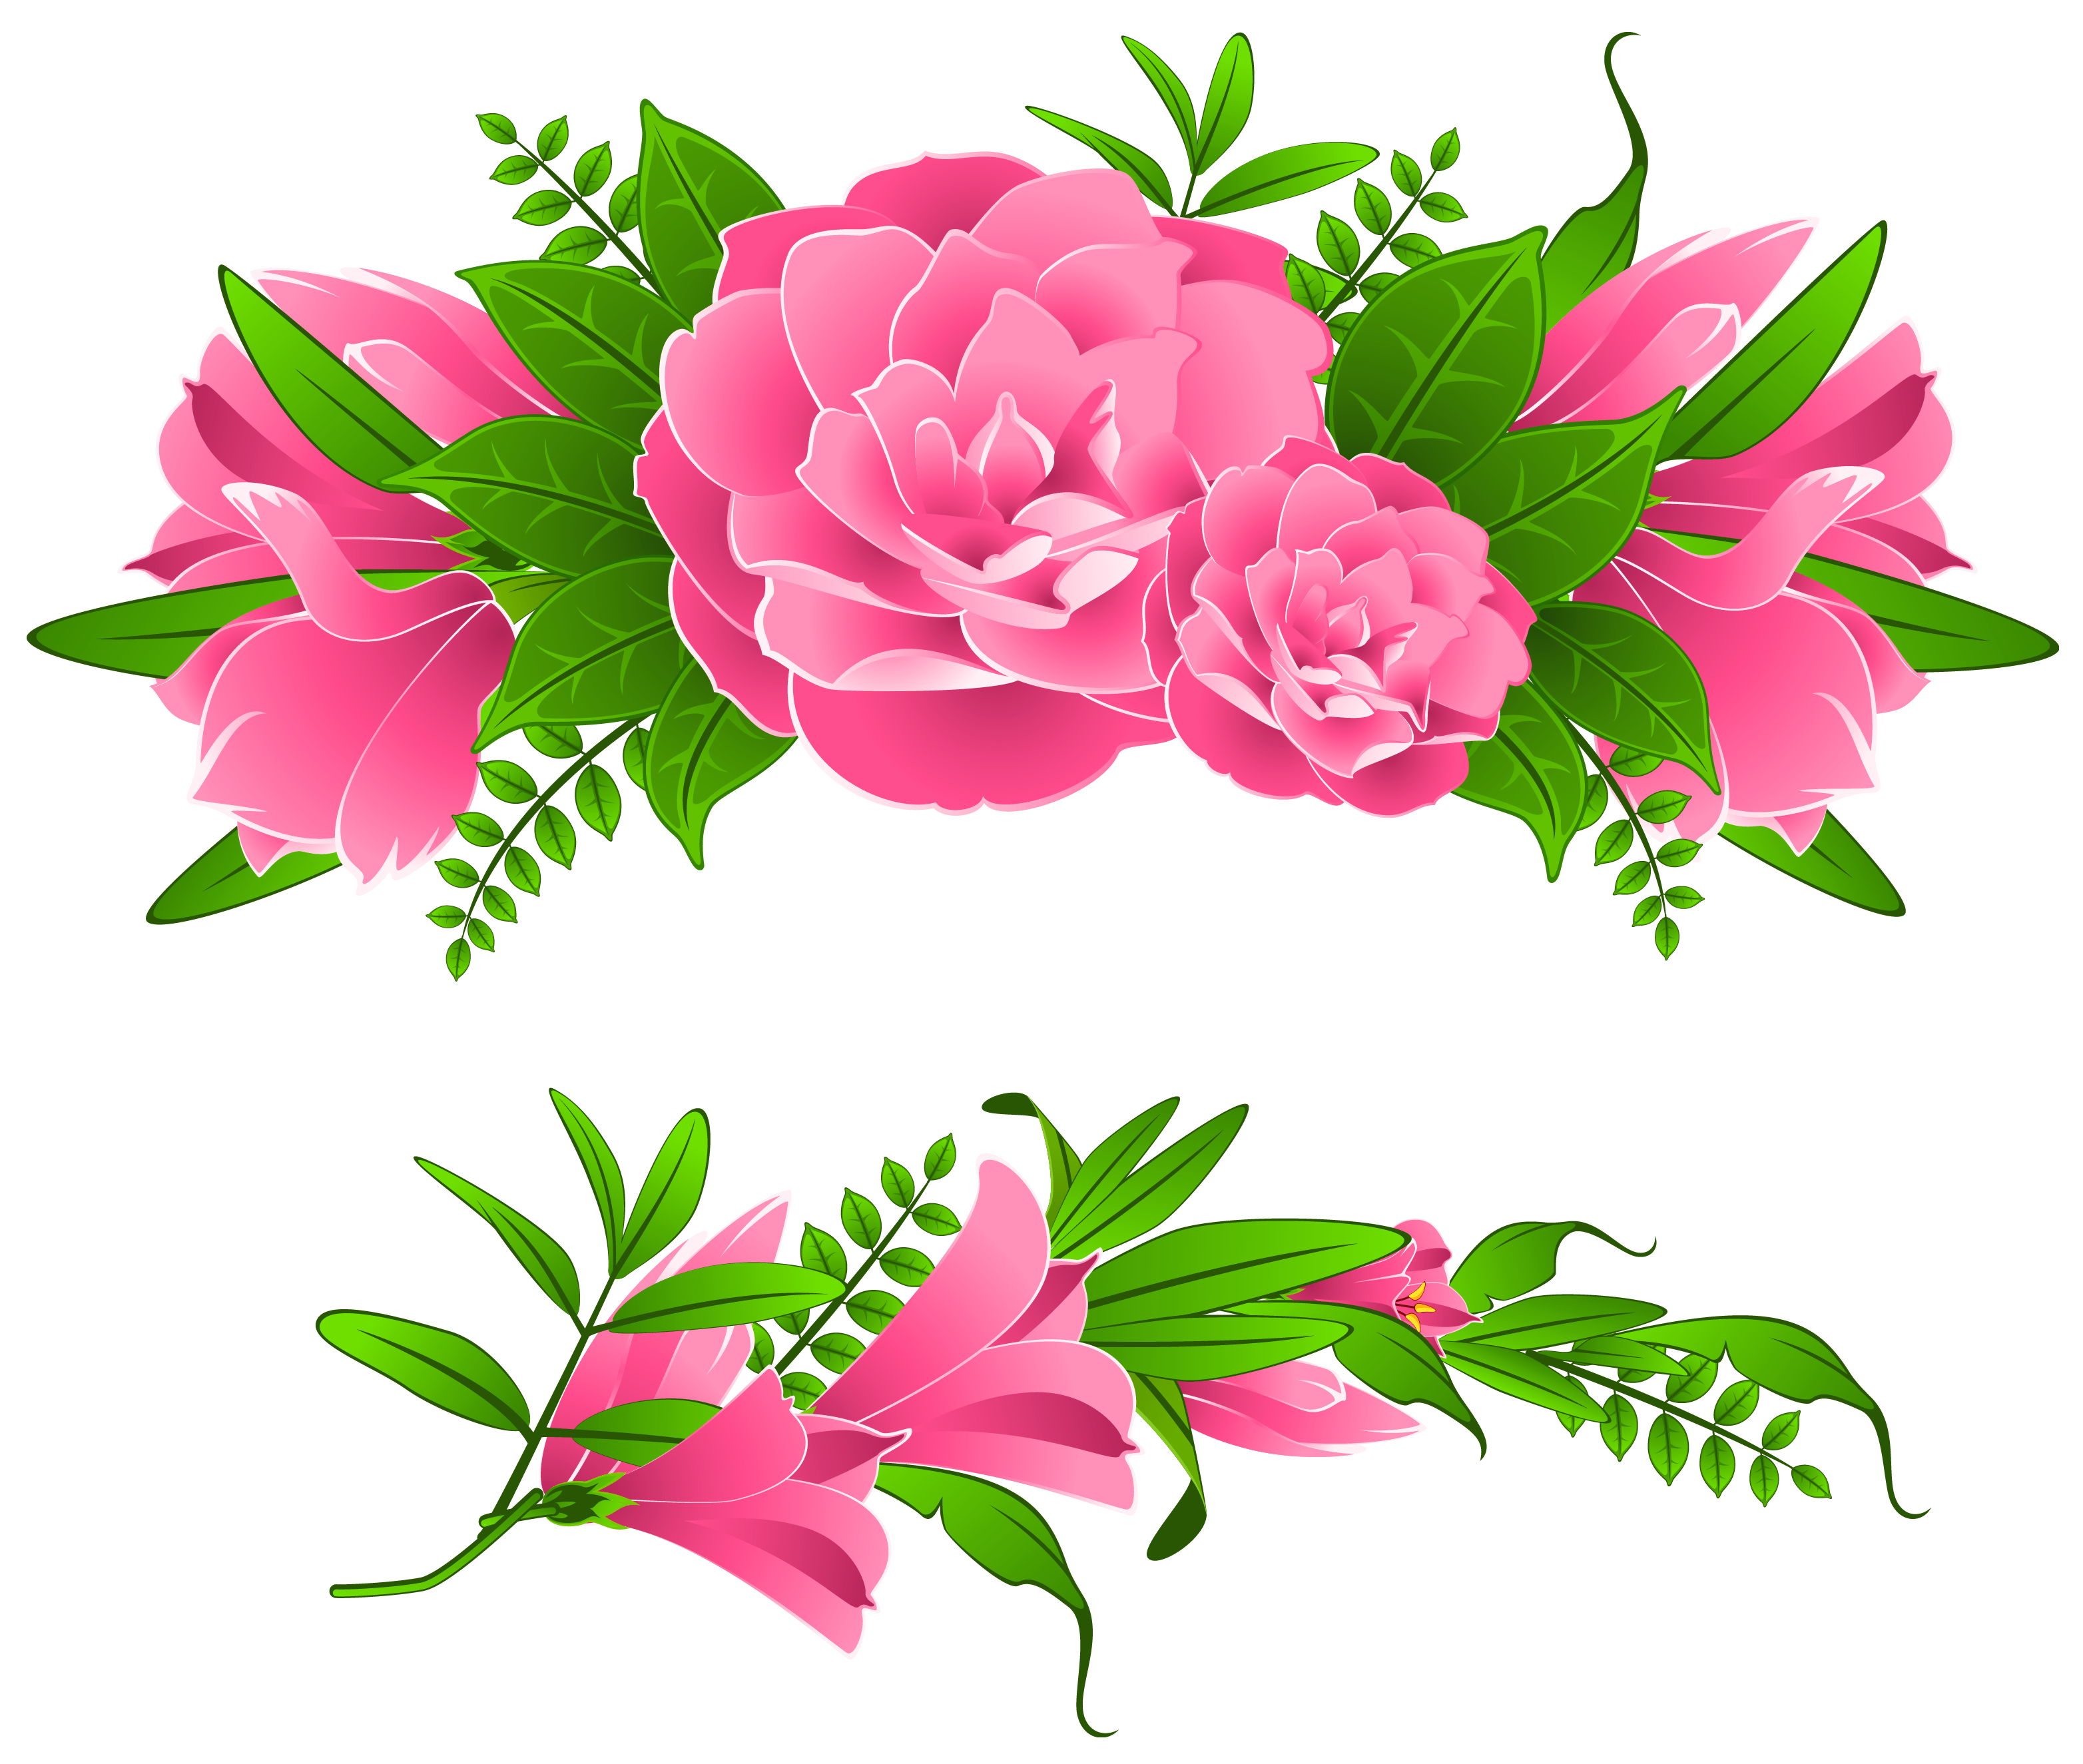 Border flowers png. Borders free image